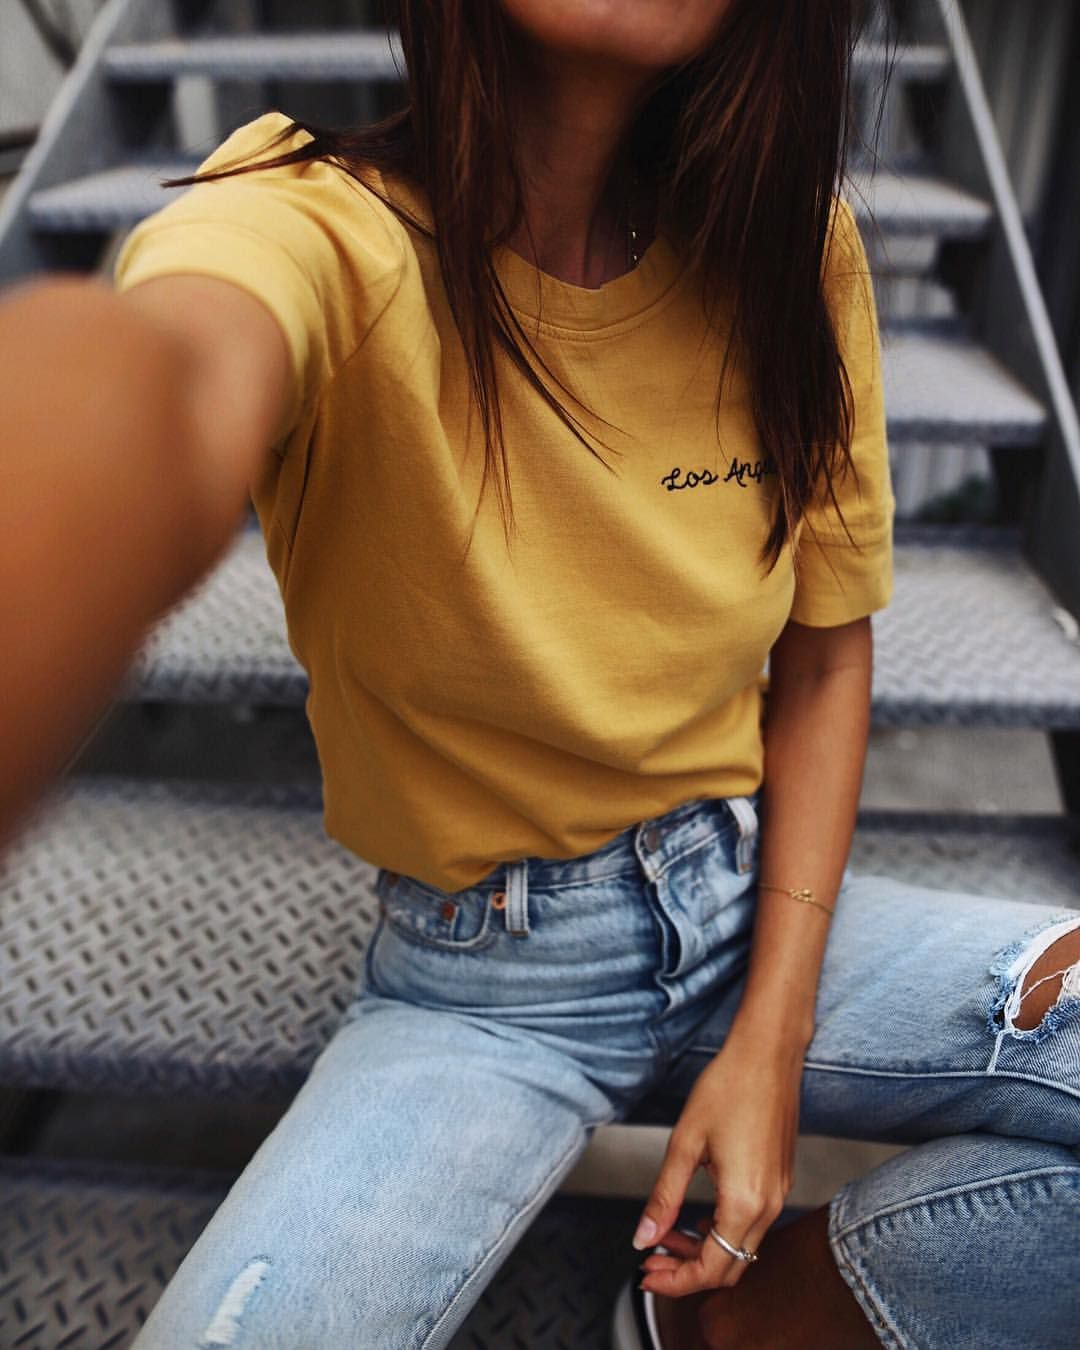 Pin By Shay On Hallway In 2019: Pin By Shay On ↡ I Would Wear This ↡ In 2019